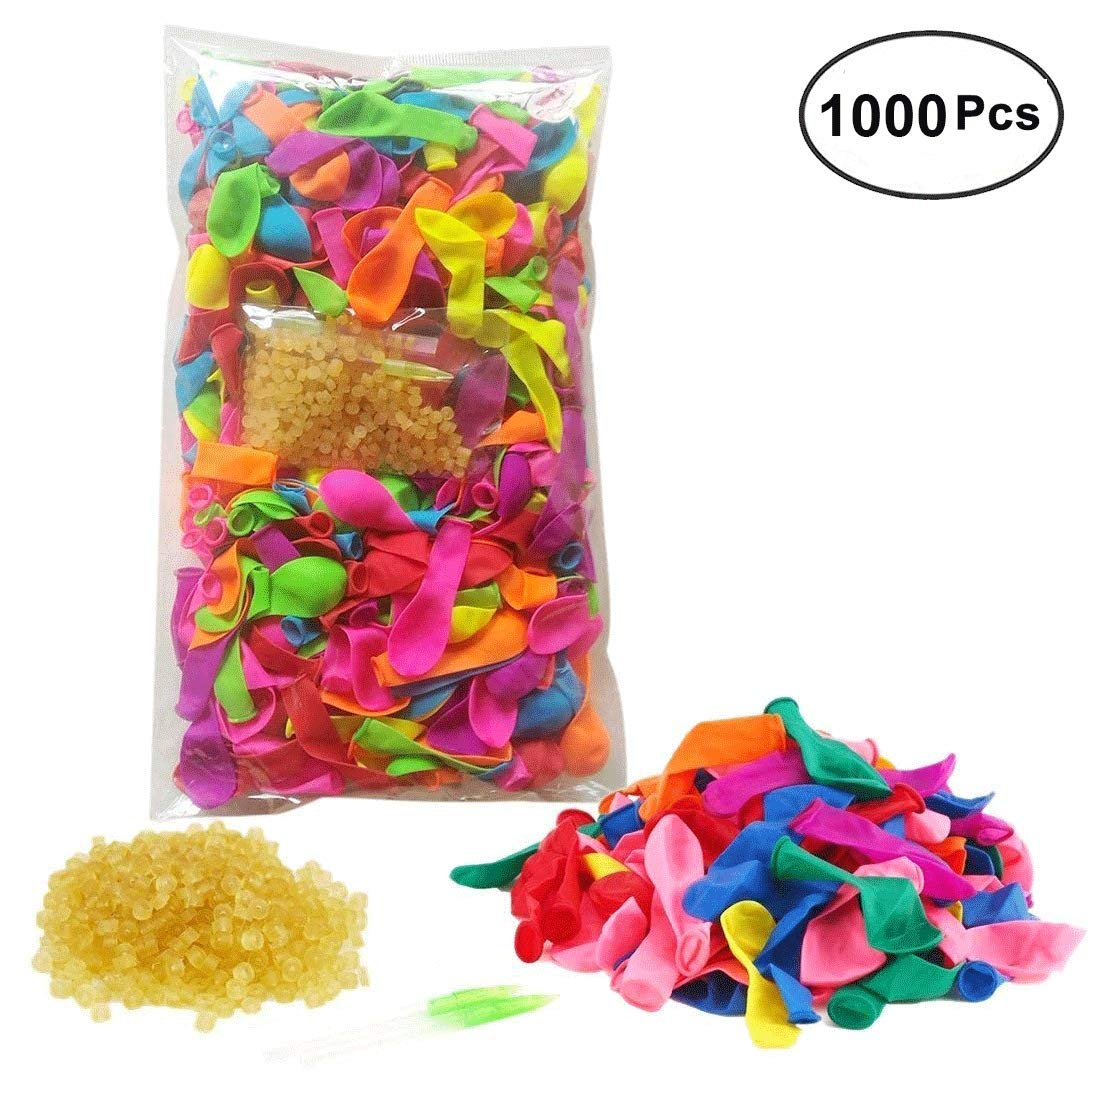 PeleusTech® 1000 PCS Water Balloons Latex Water Bomb Balloons with Refill Kit and Rubber Bands for Kids Adults